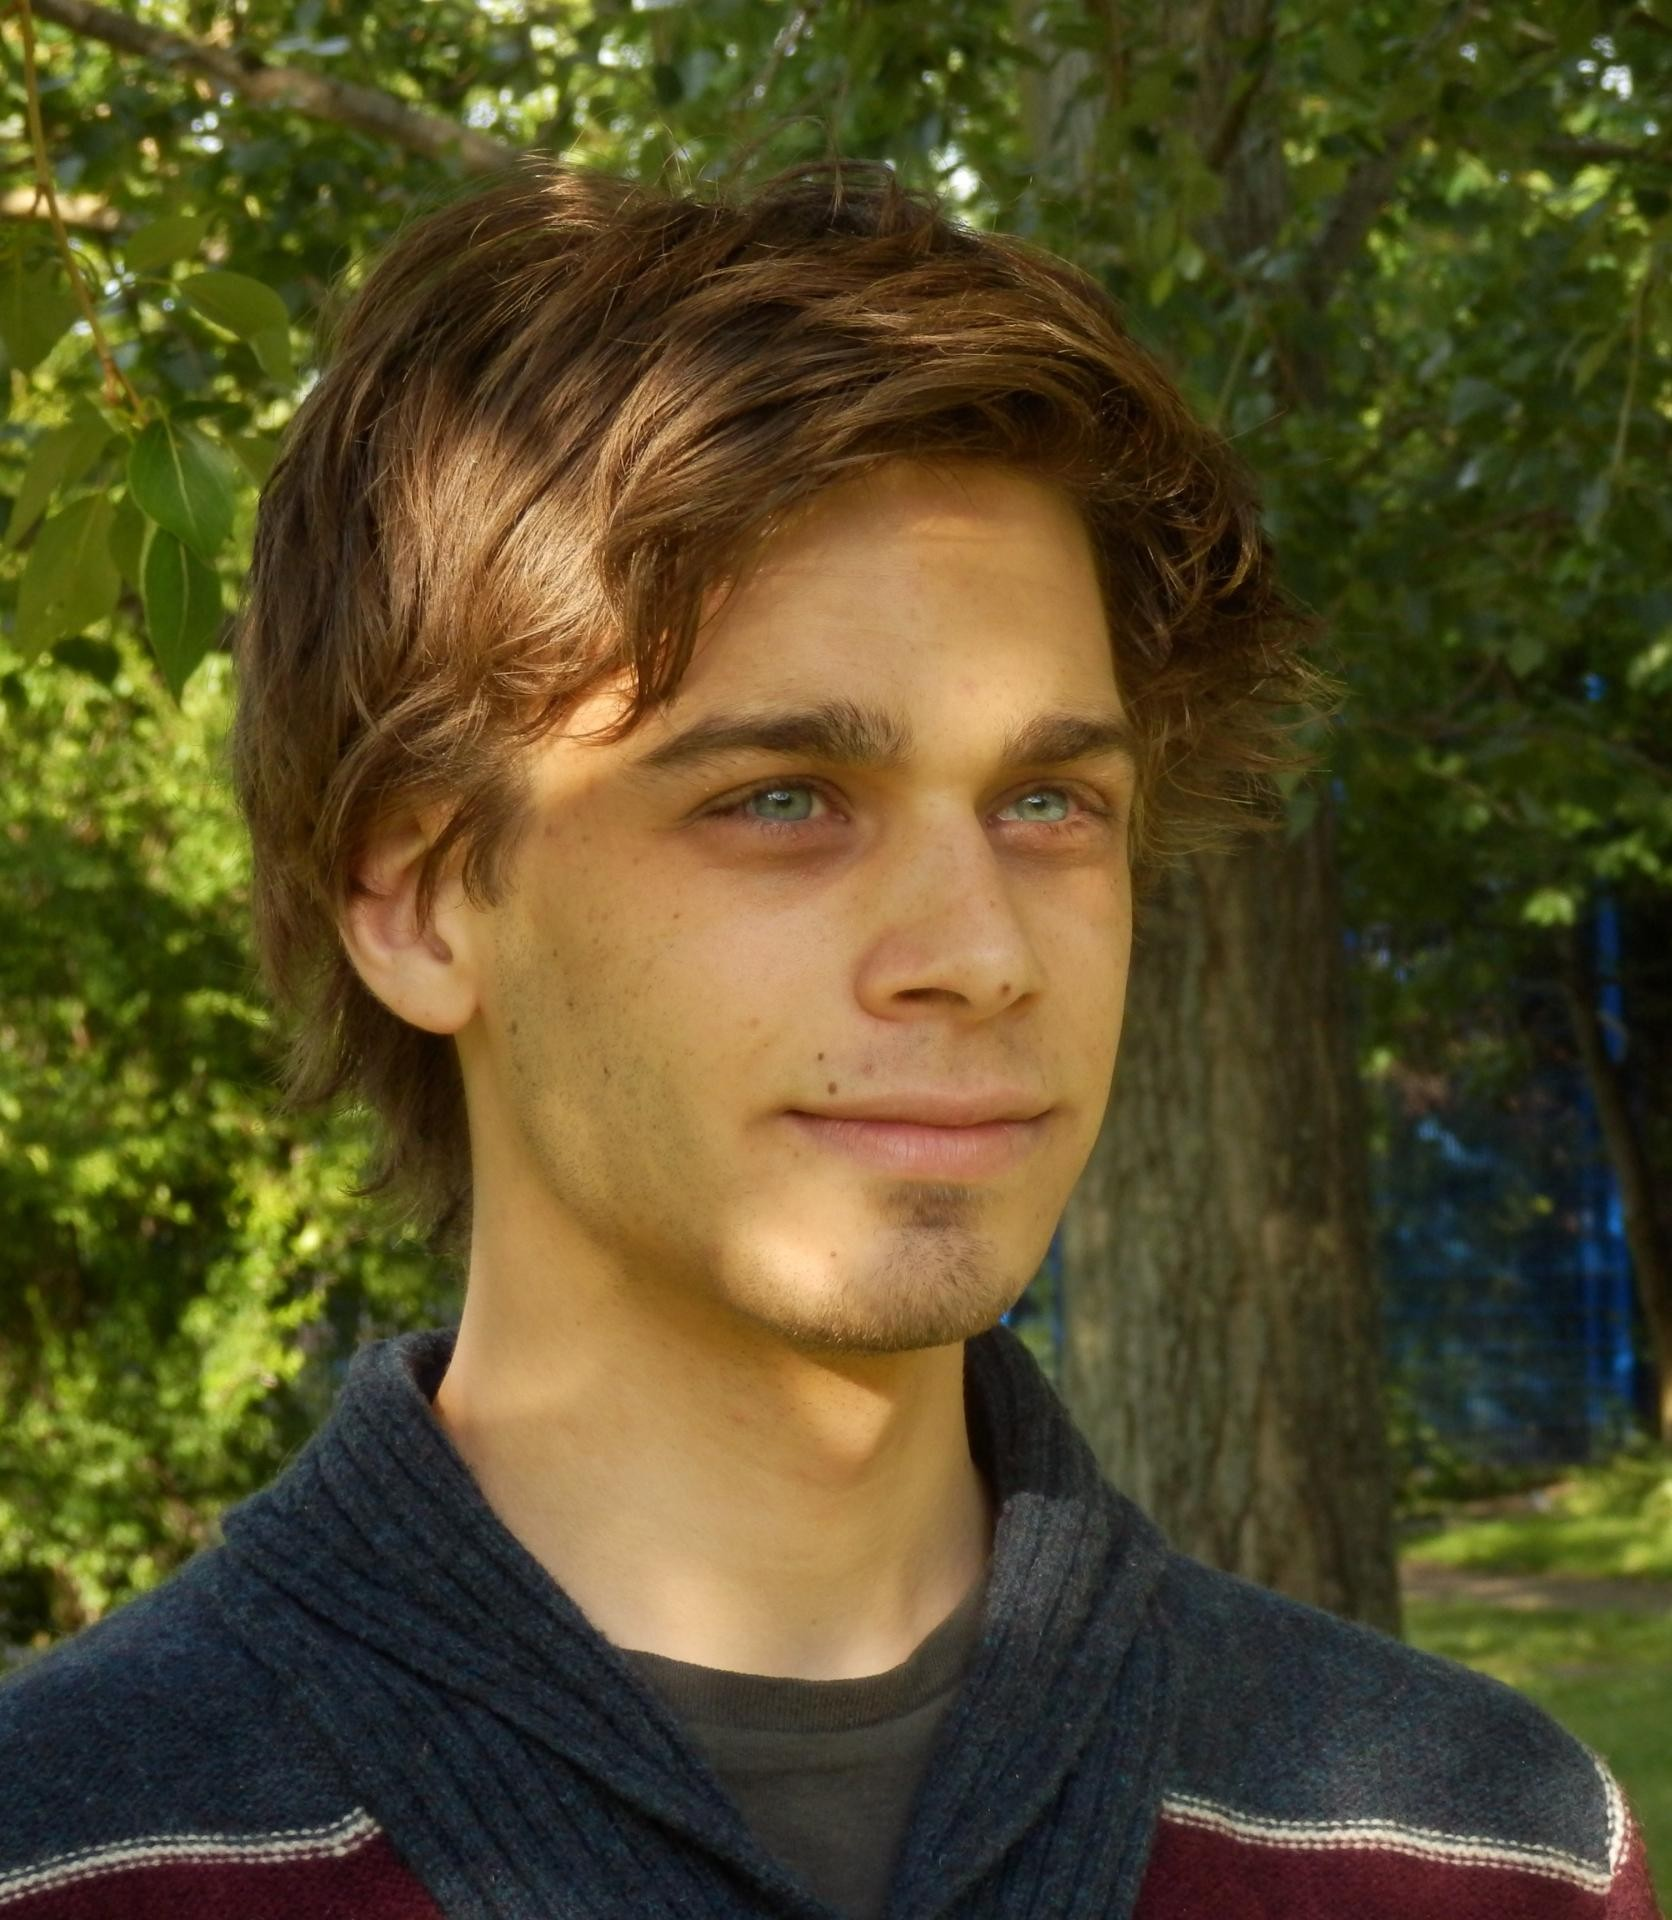 photo of Michael Watzka